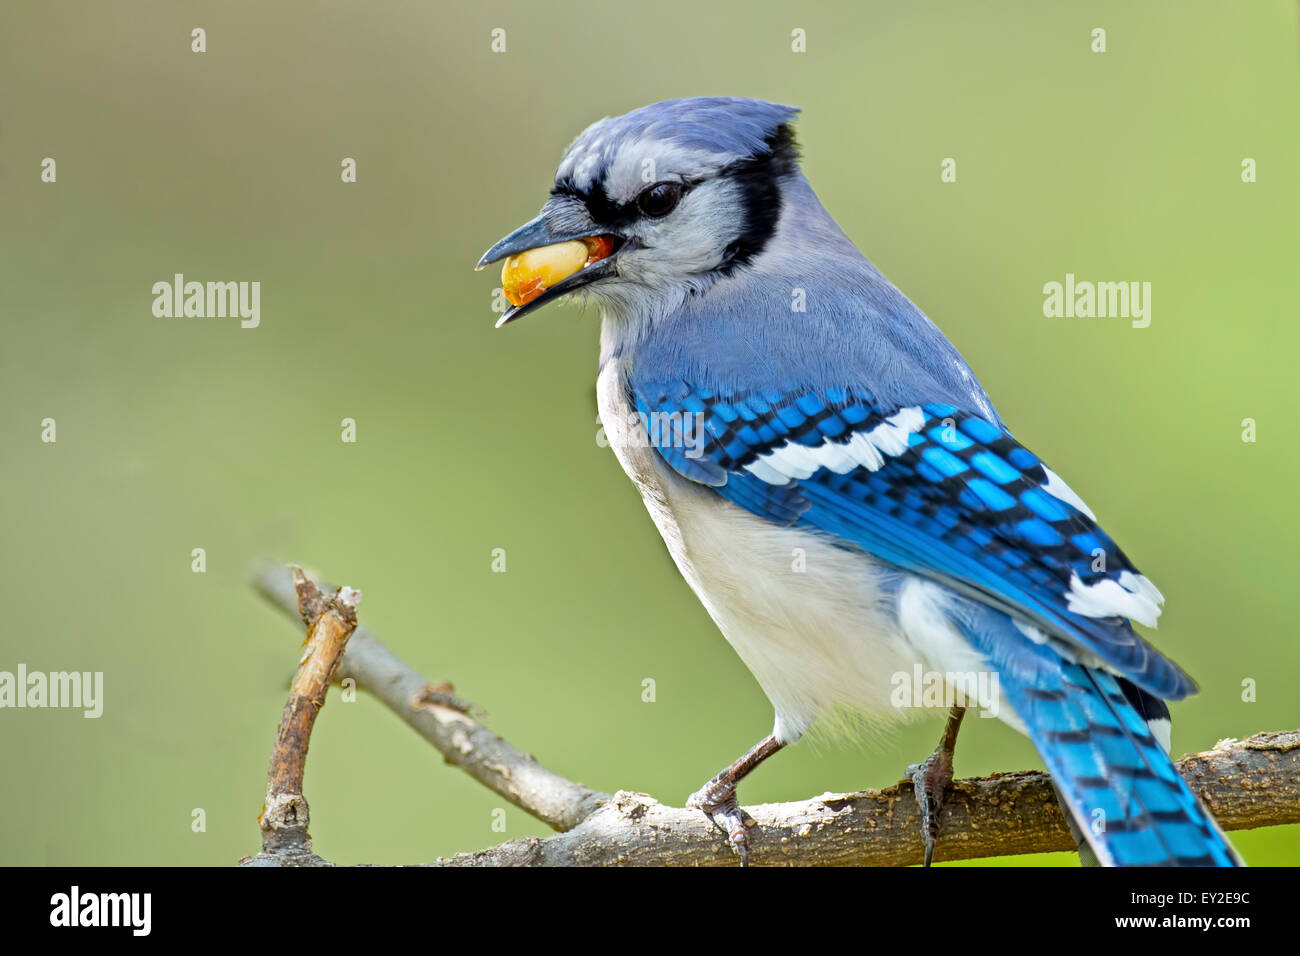 Blue Jay on Branch with Peanut in Mouth Stock Photo